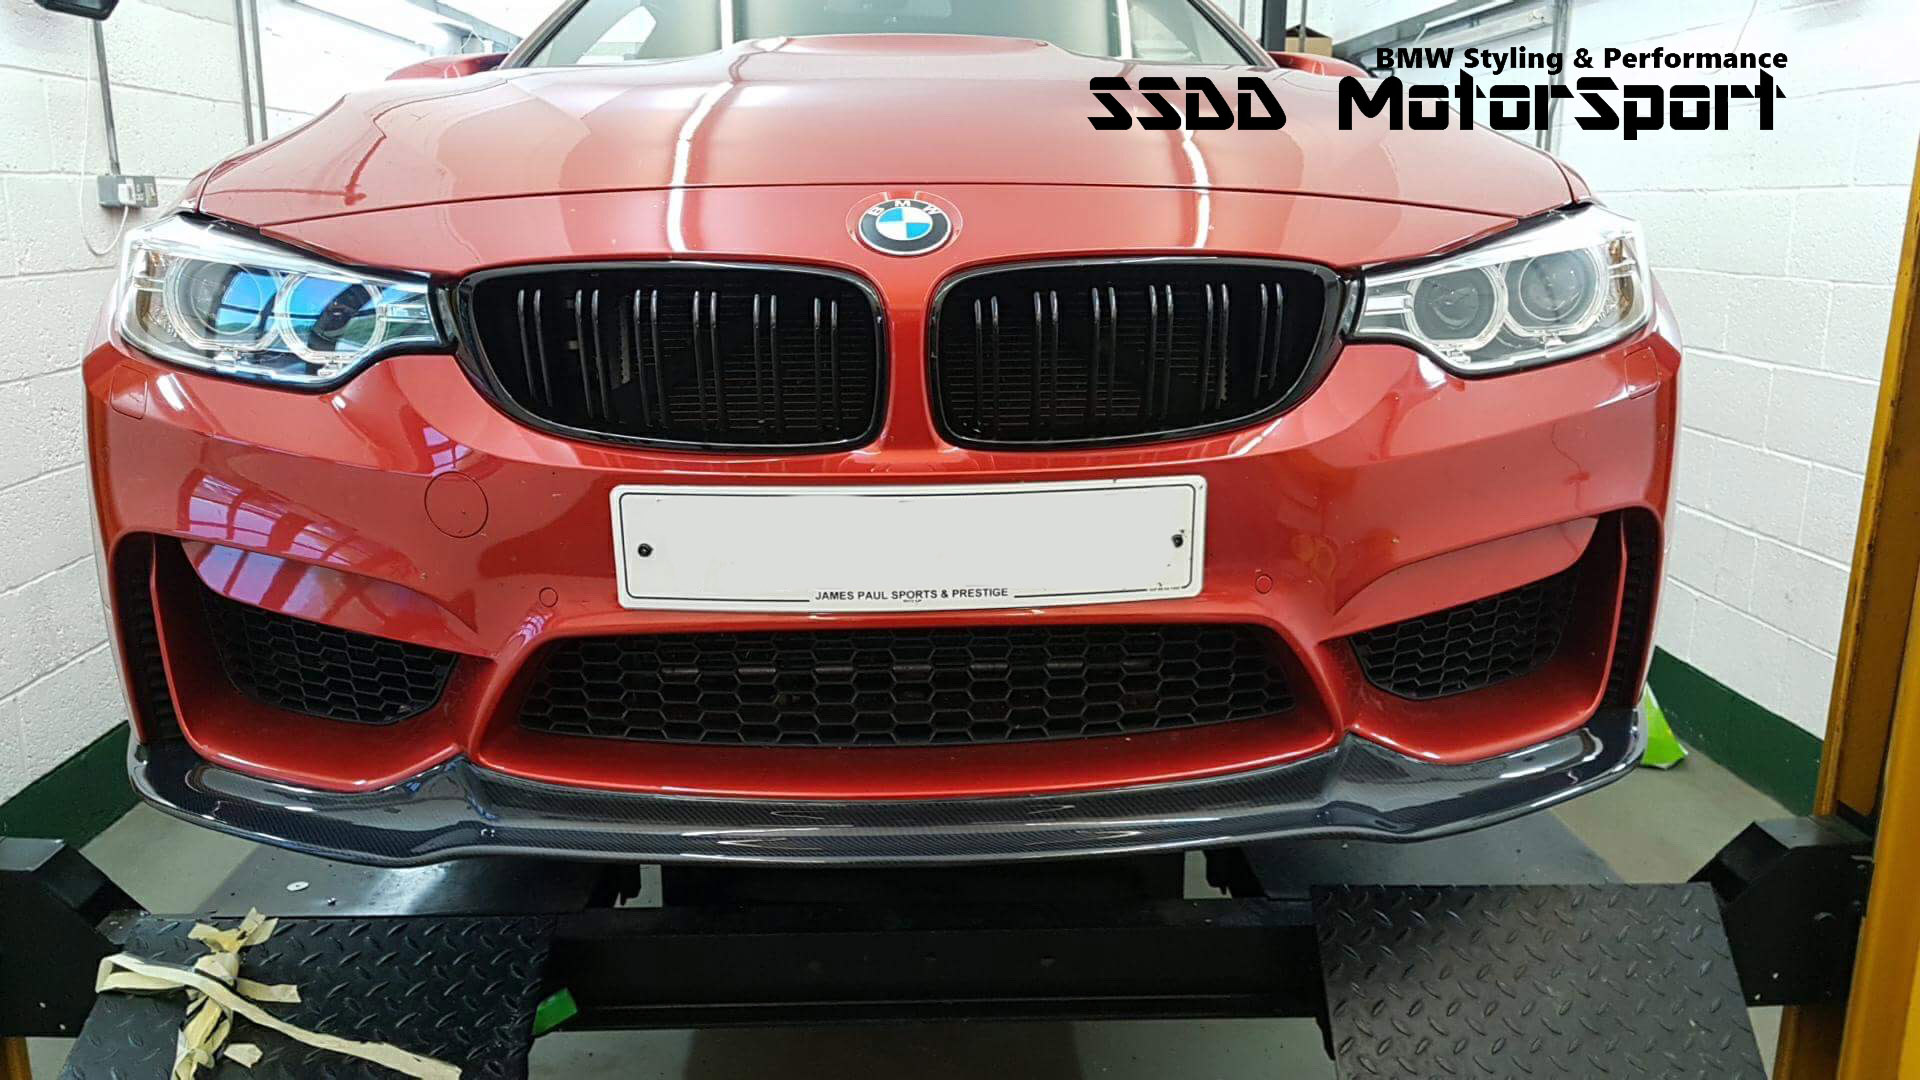 bmw-f82-m4-front-splitter-v-racing-carbon-fibre-8-copy.jpg